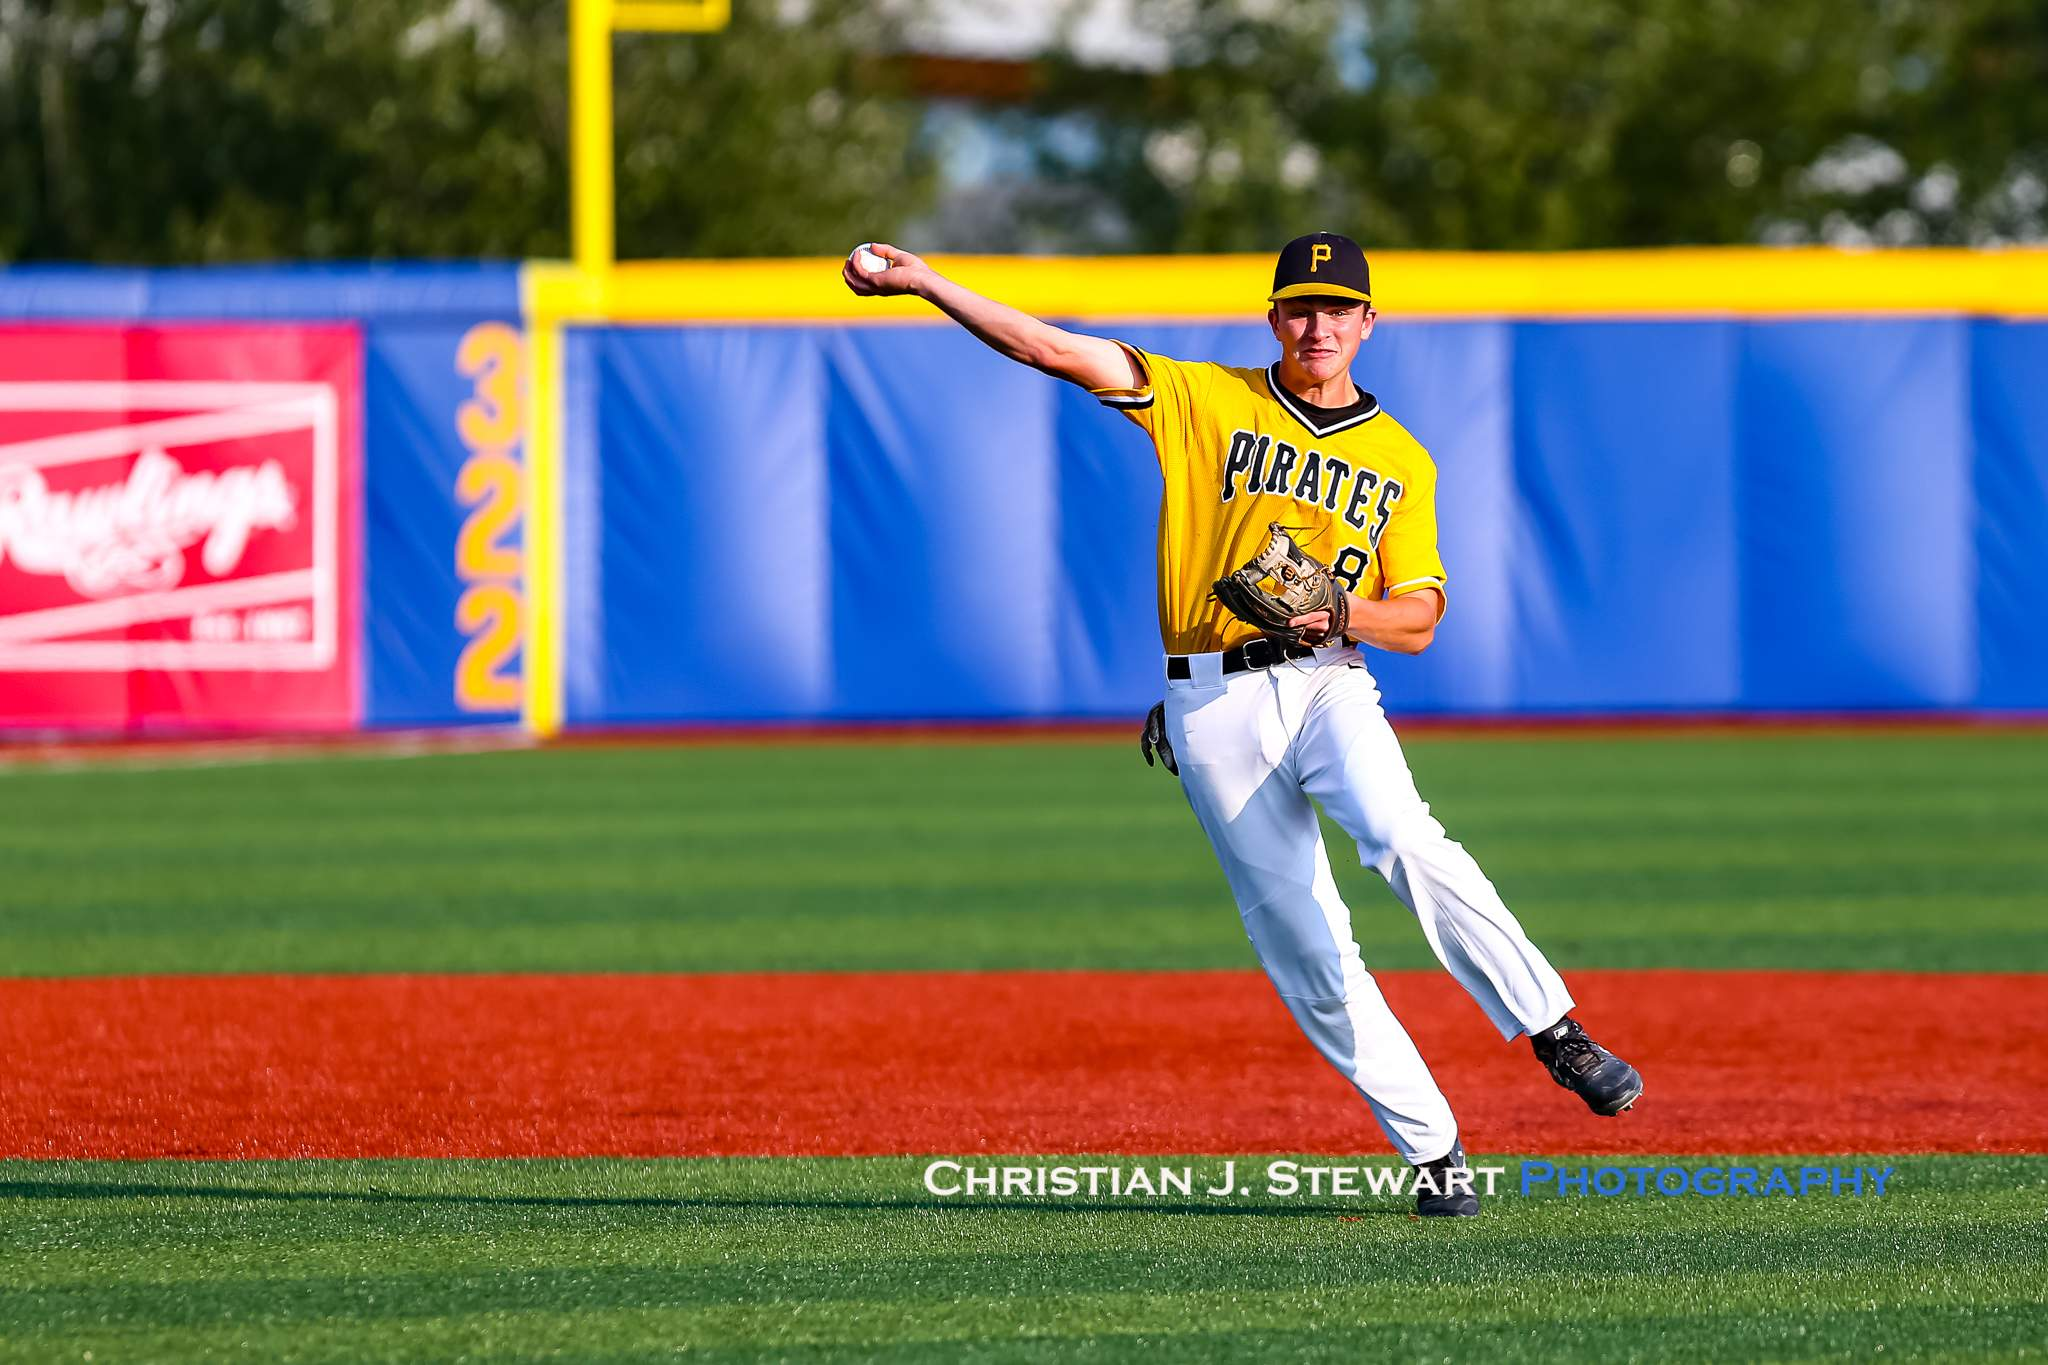 Nanaimo shortstop Marcus Steen makes a nice play against UBC Friday night (Photo: Christian J. Stewart)